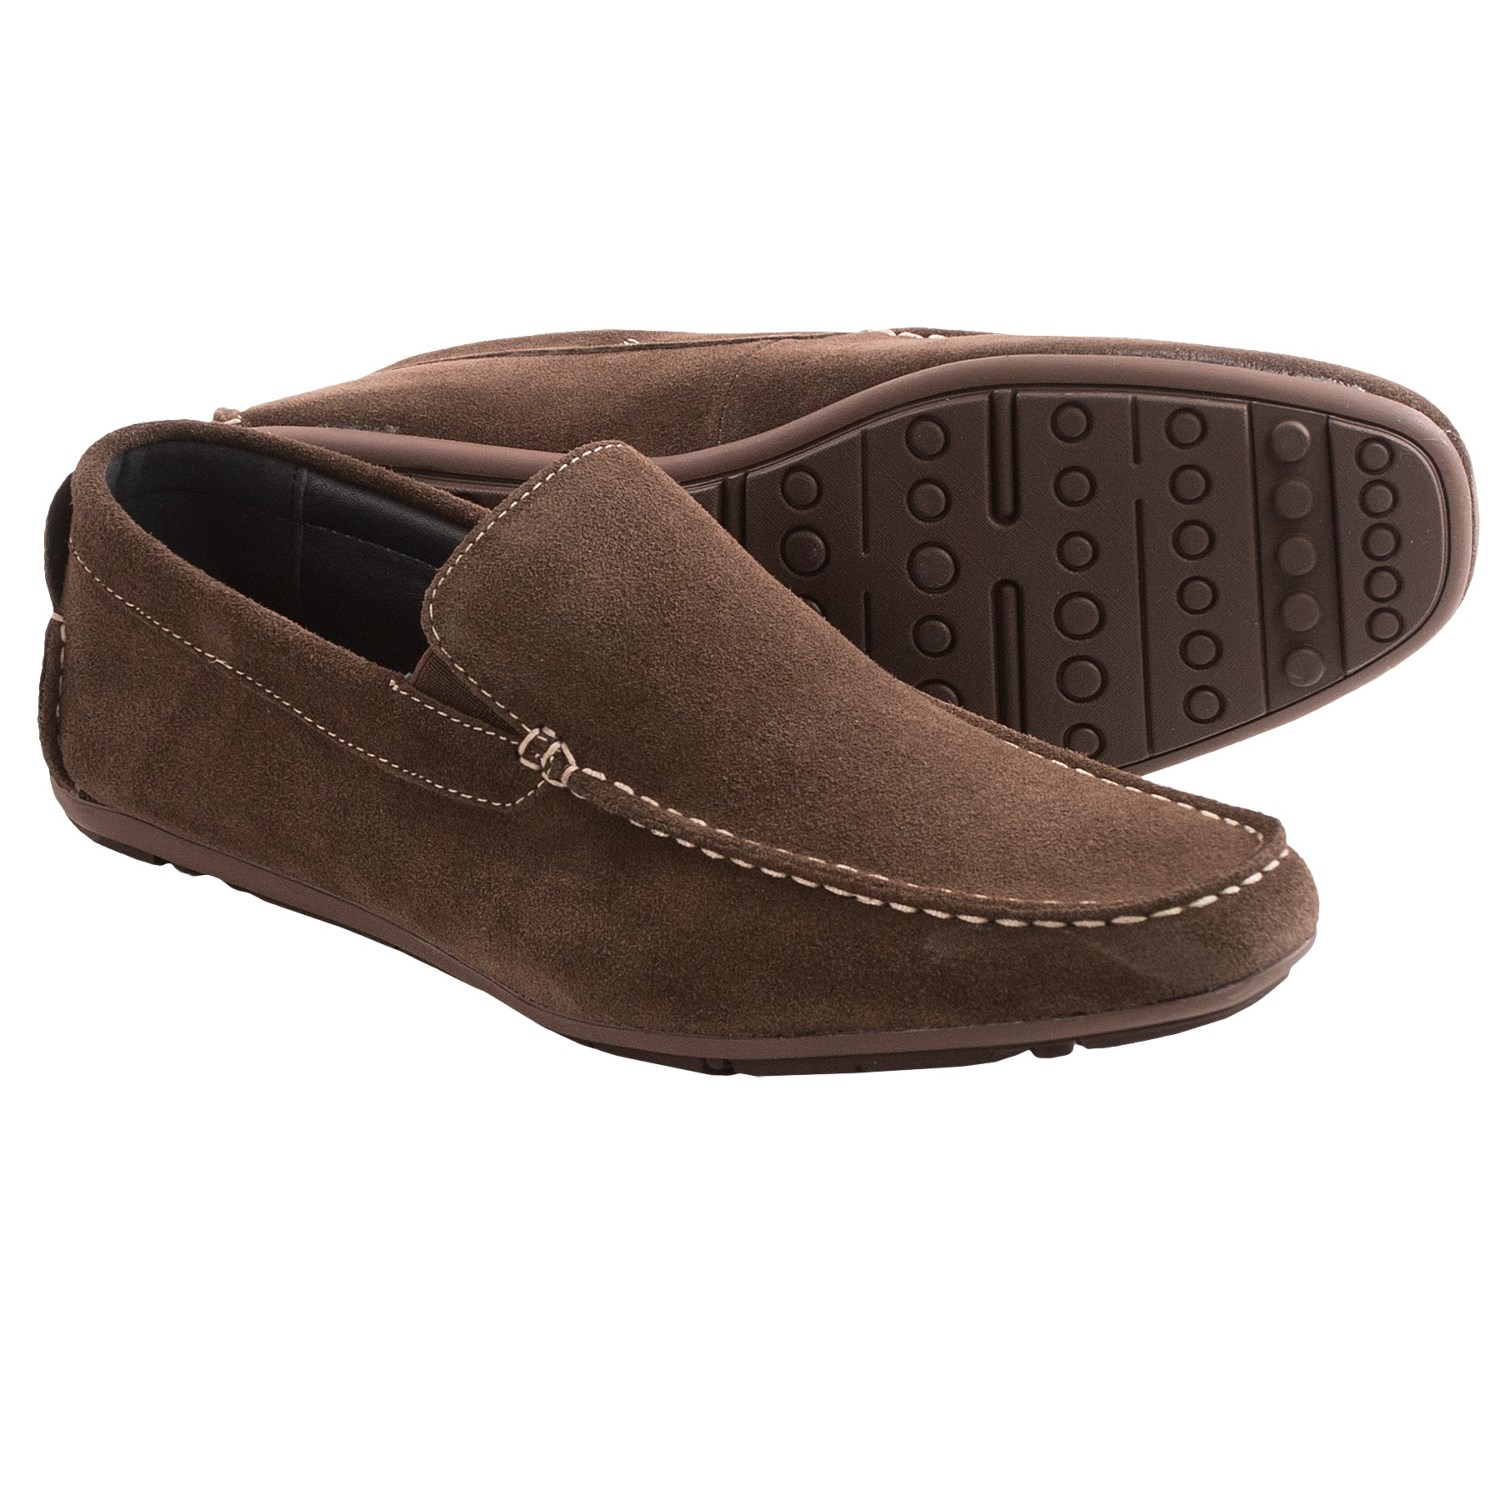 joseph abboud justin shoes for save 73